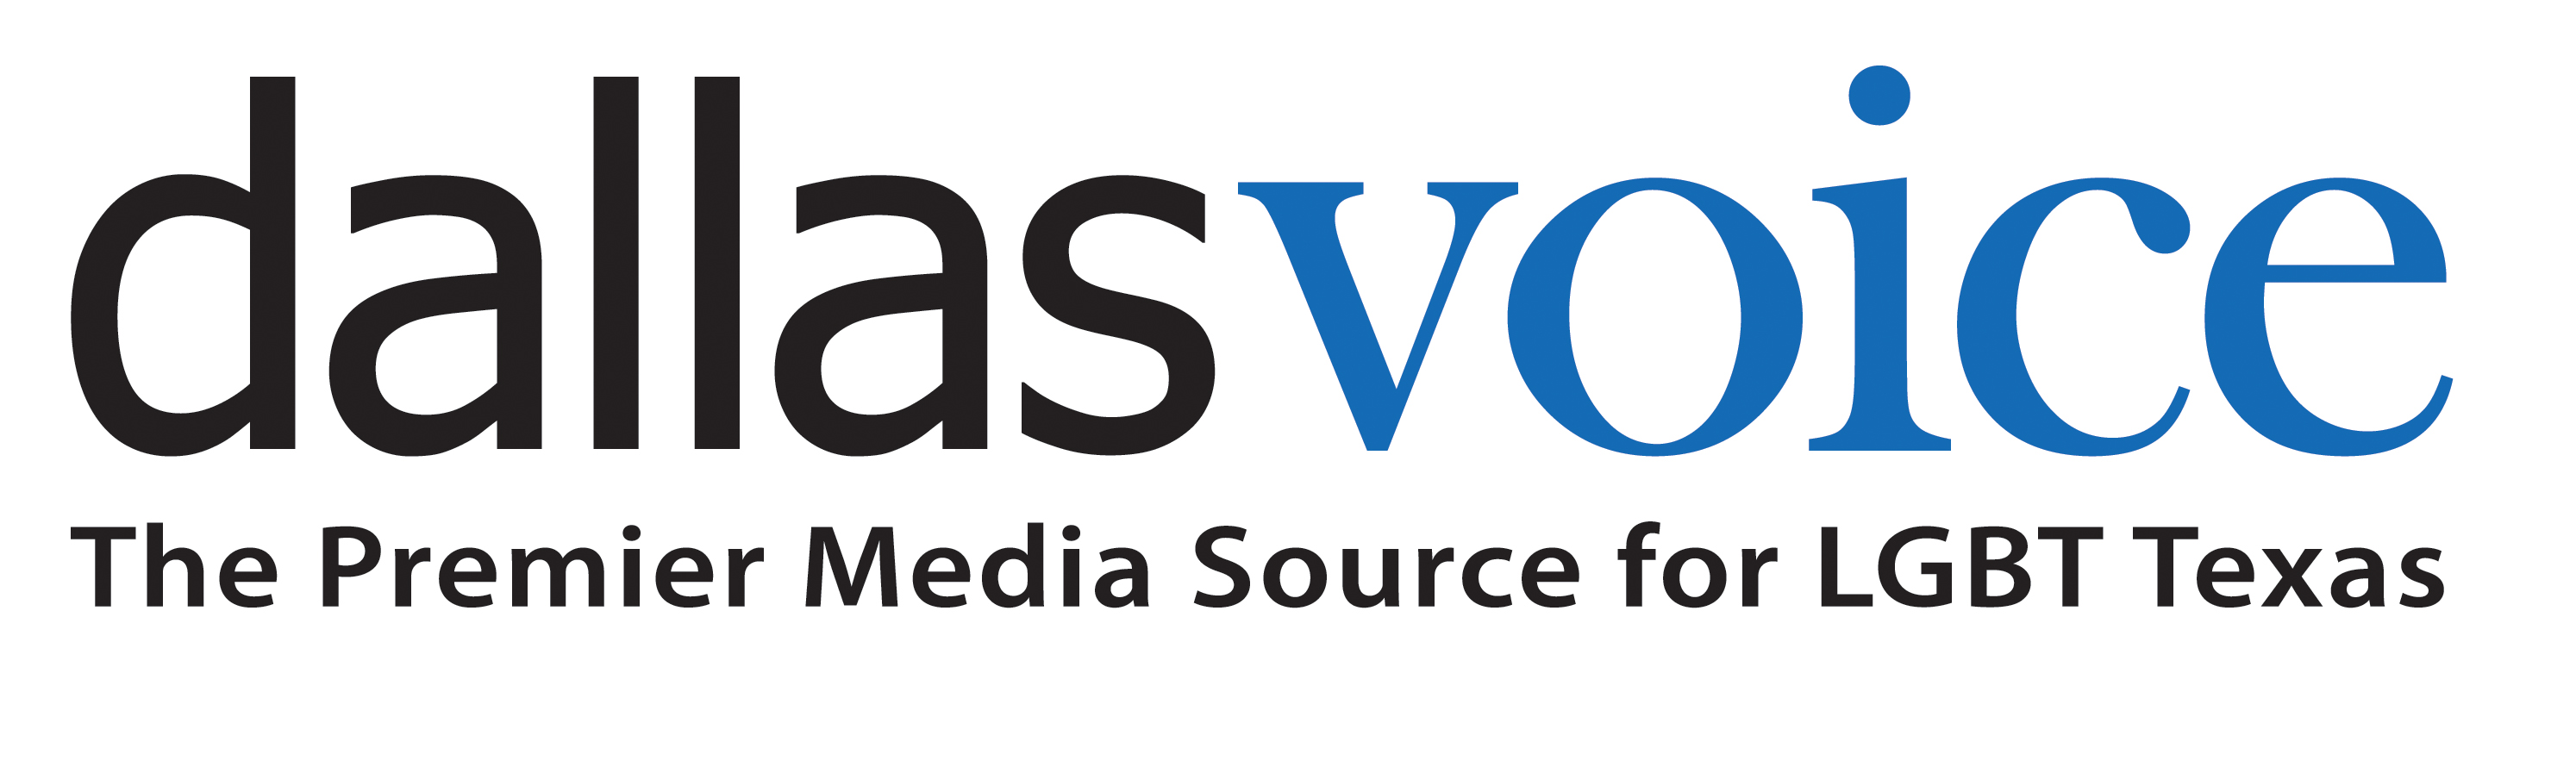 dallas voice logo